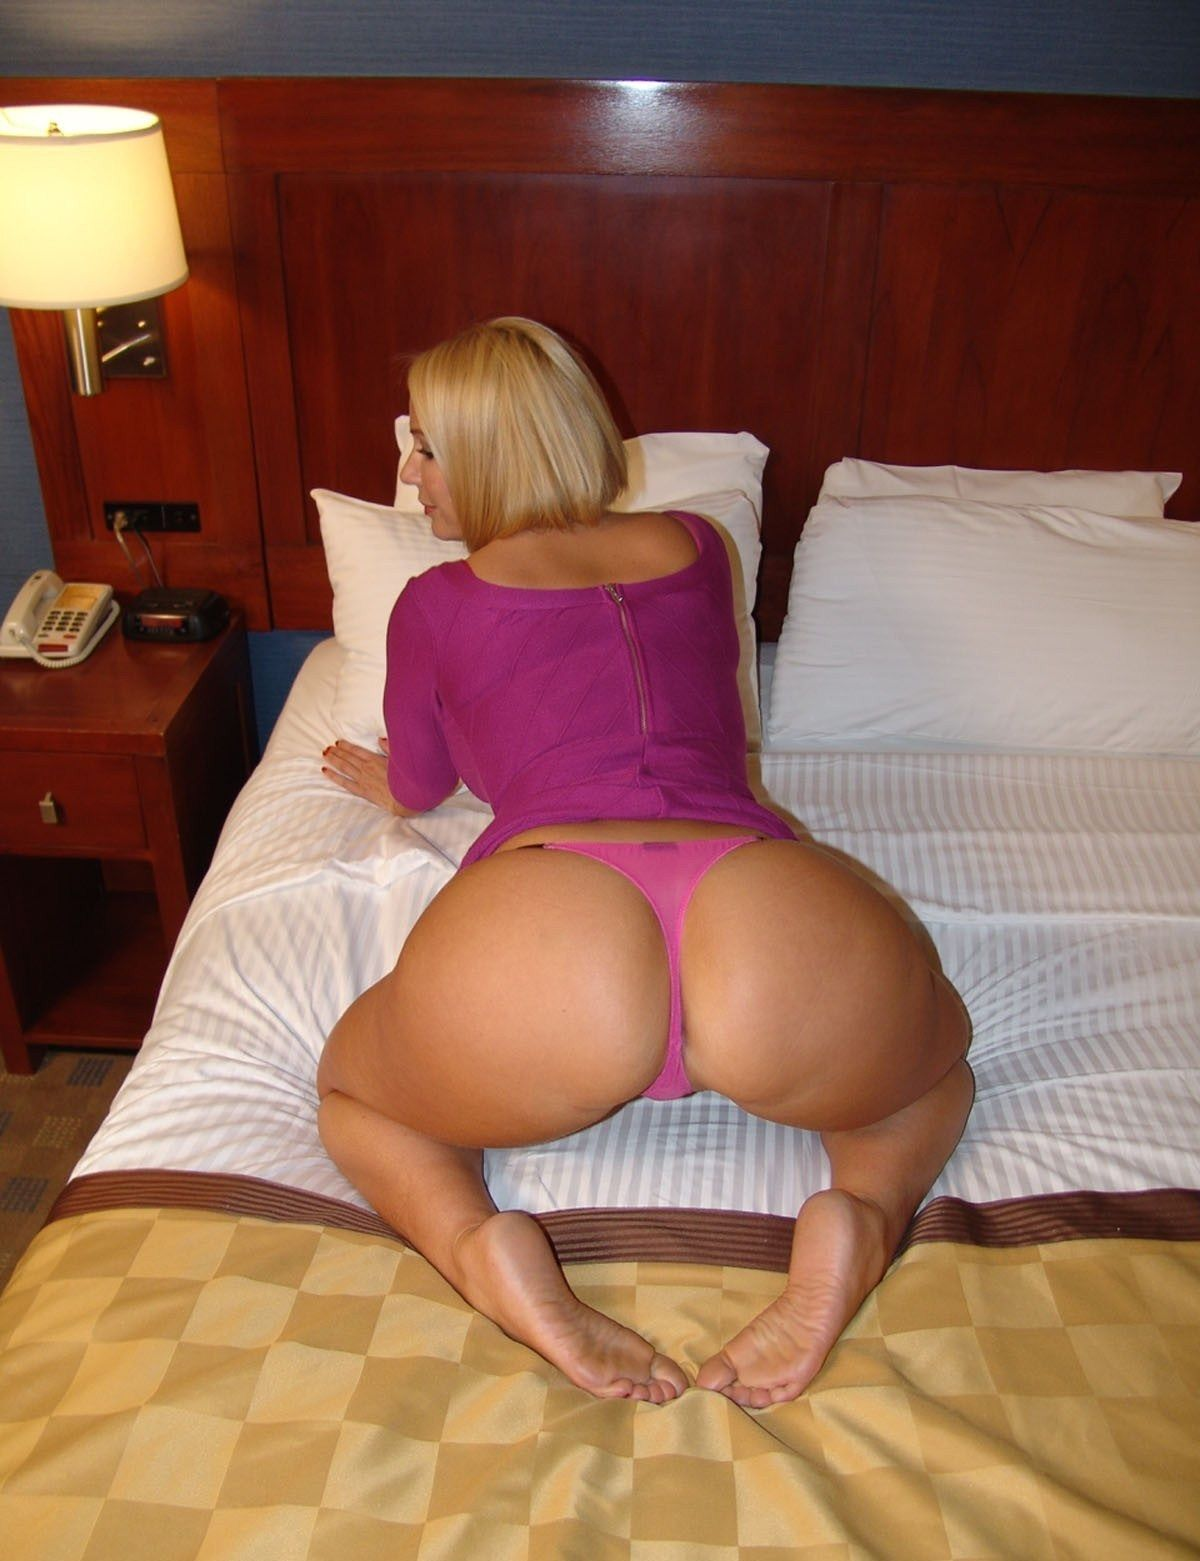 Hot Older Housewifes 52